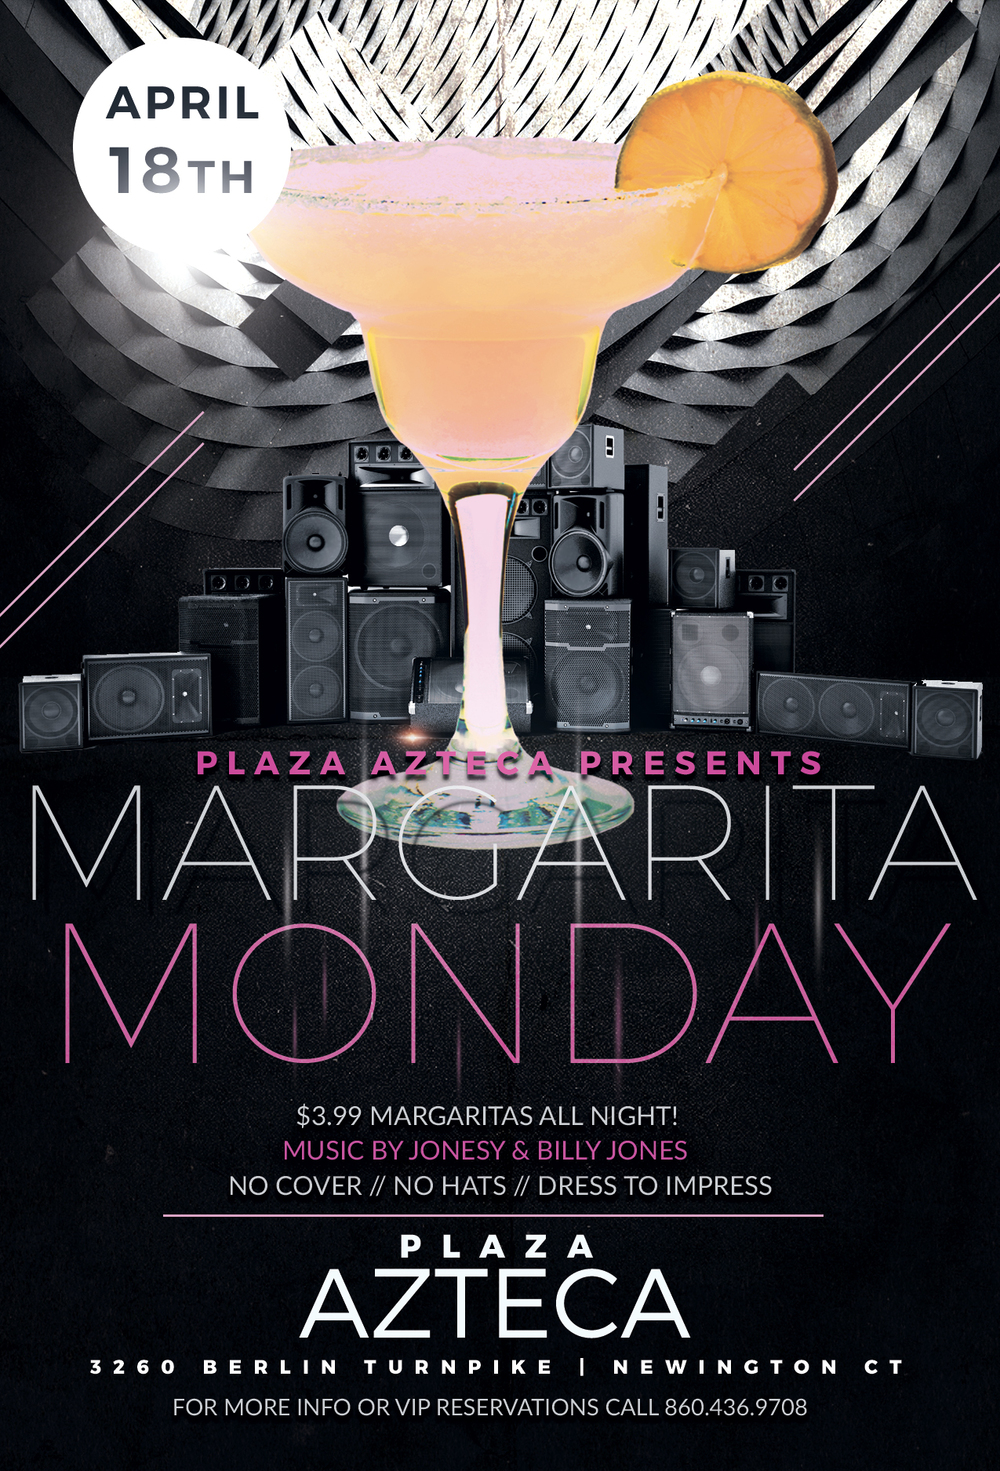 Monday, April 18th join me at Plaza Azteca in Newington, CT for Margarita Monday with music by Billy Jones & yours truly 9pm-close.  $3.99 Margaritas all night long!  Meet me there!